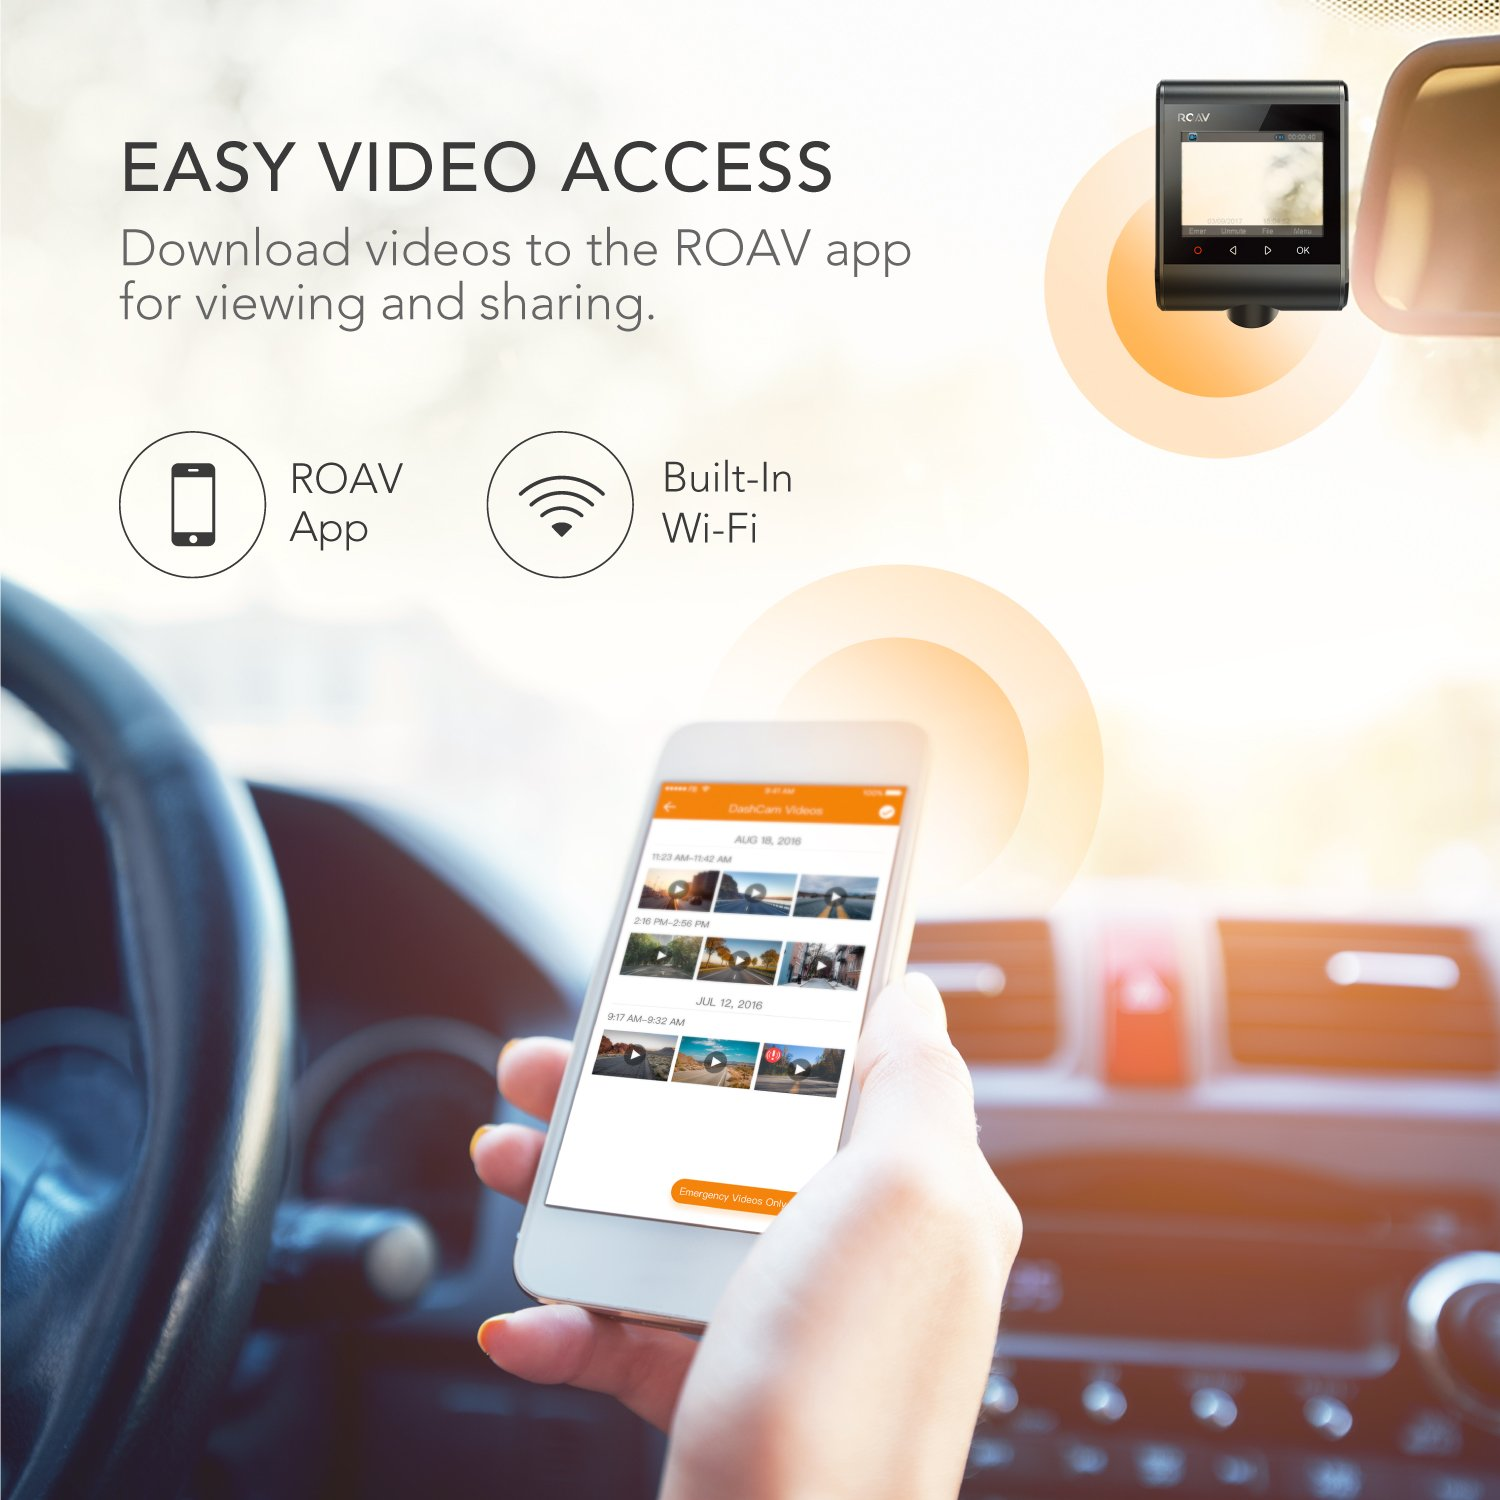 ROAV by Anker Dash Cam C1, Car Recorder with Sony Sensor, 1080P FHD, 4-Lane Wide-Angle View Lens, Built-in WiFi with APP, G-Sensor, WDR, Loop Recording, Night Mode, Parking Mode [Upgraded Version] by ROAV (Image #5)